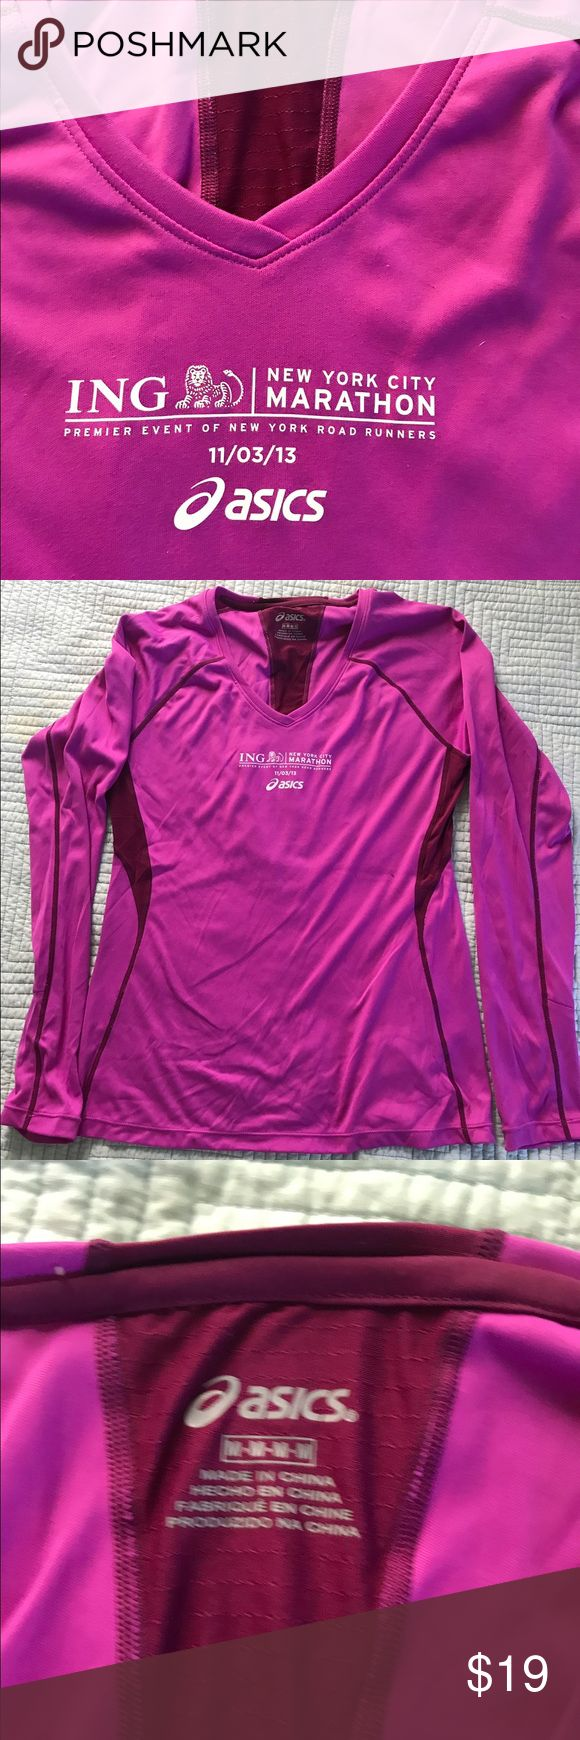 Asics Long Sleeve Top NYC Marathon 2013 logo Worn once and washed Asics running/workout too NYC 2013 Marathon logo Asics Tops Tees - Long Sleeve